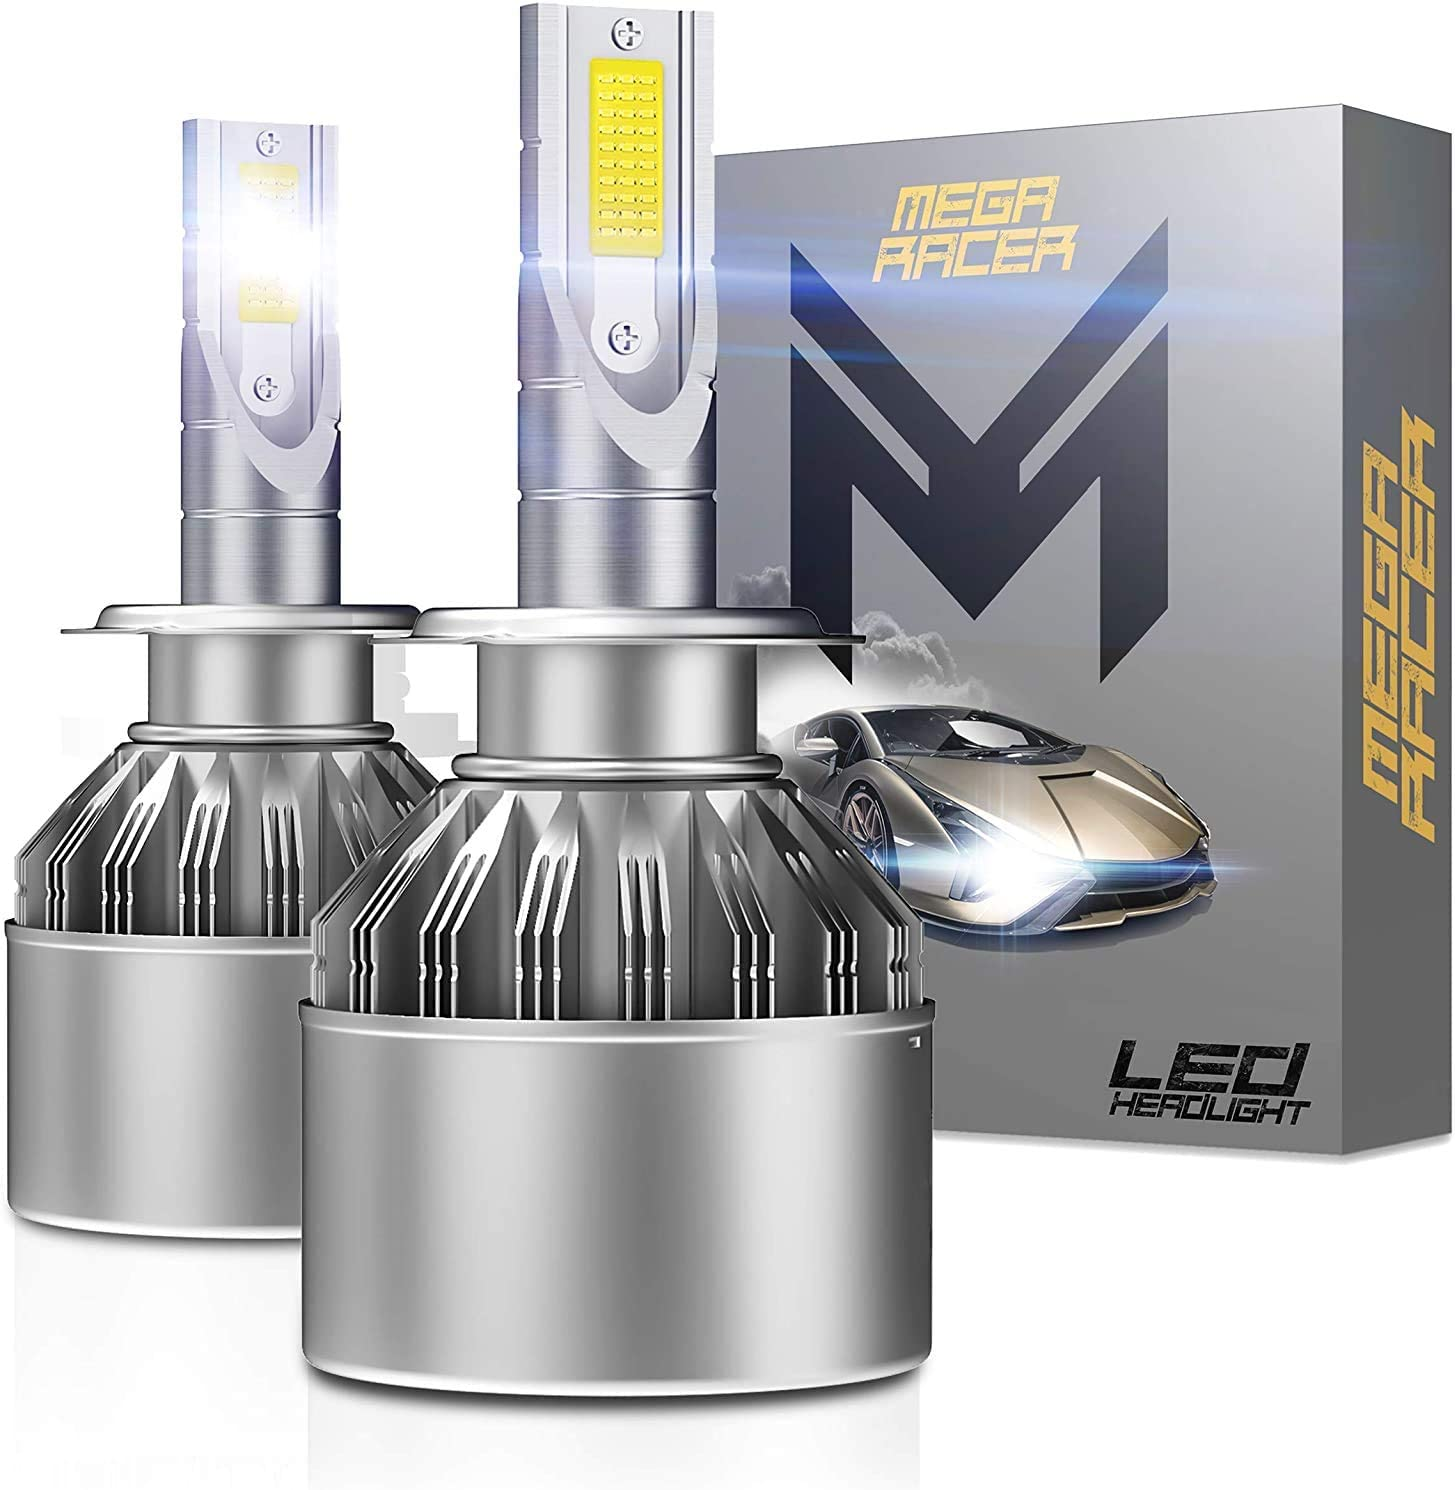 Mega Racer H7 LED Headlight Bulb 6000K White 8000 Lumens H7 LED Bulbs LED H7 Headlights H7 LED Headlights H7 LED Bulb LED H7 Headlight Bulb H7 Bulb H7 HID Kit H7 Headlight